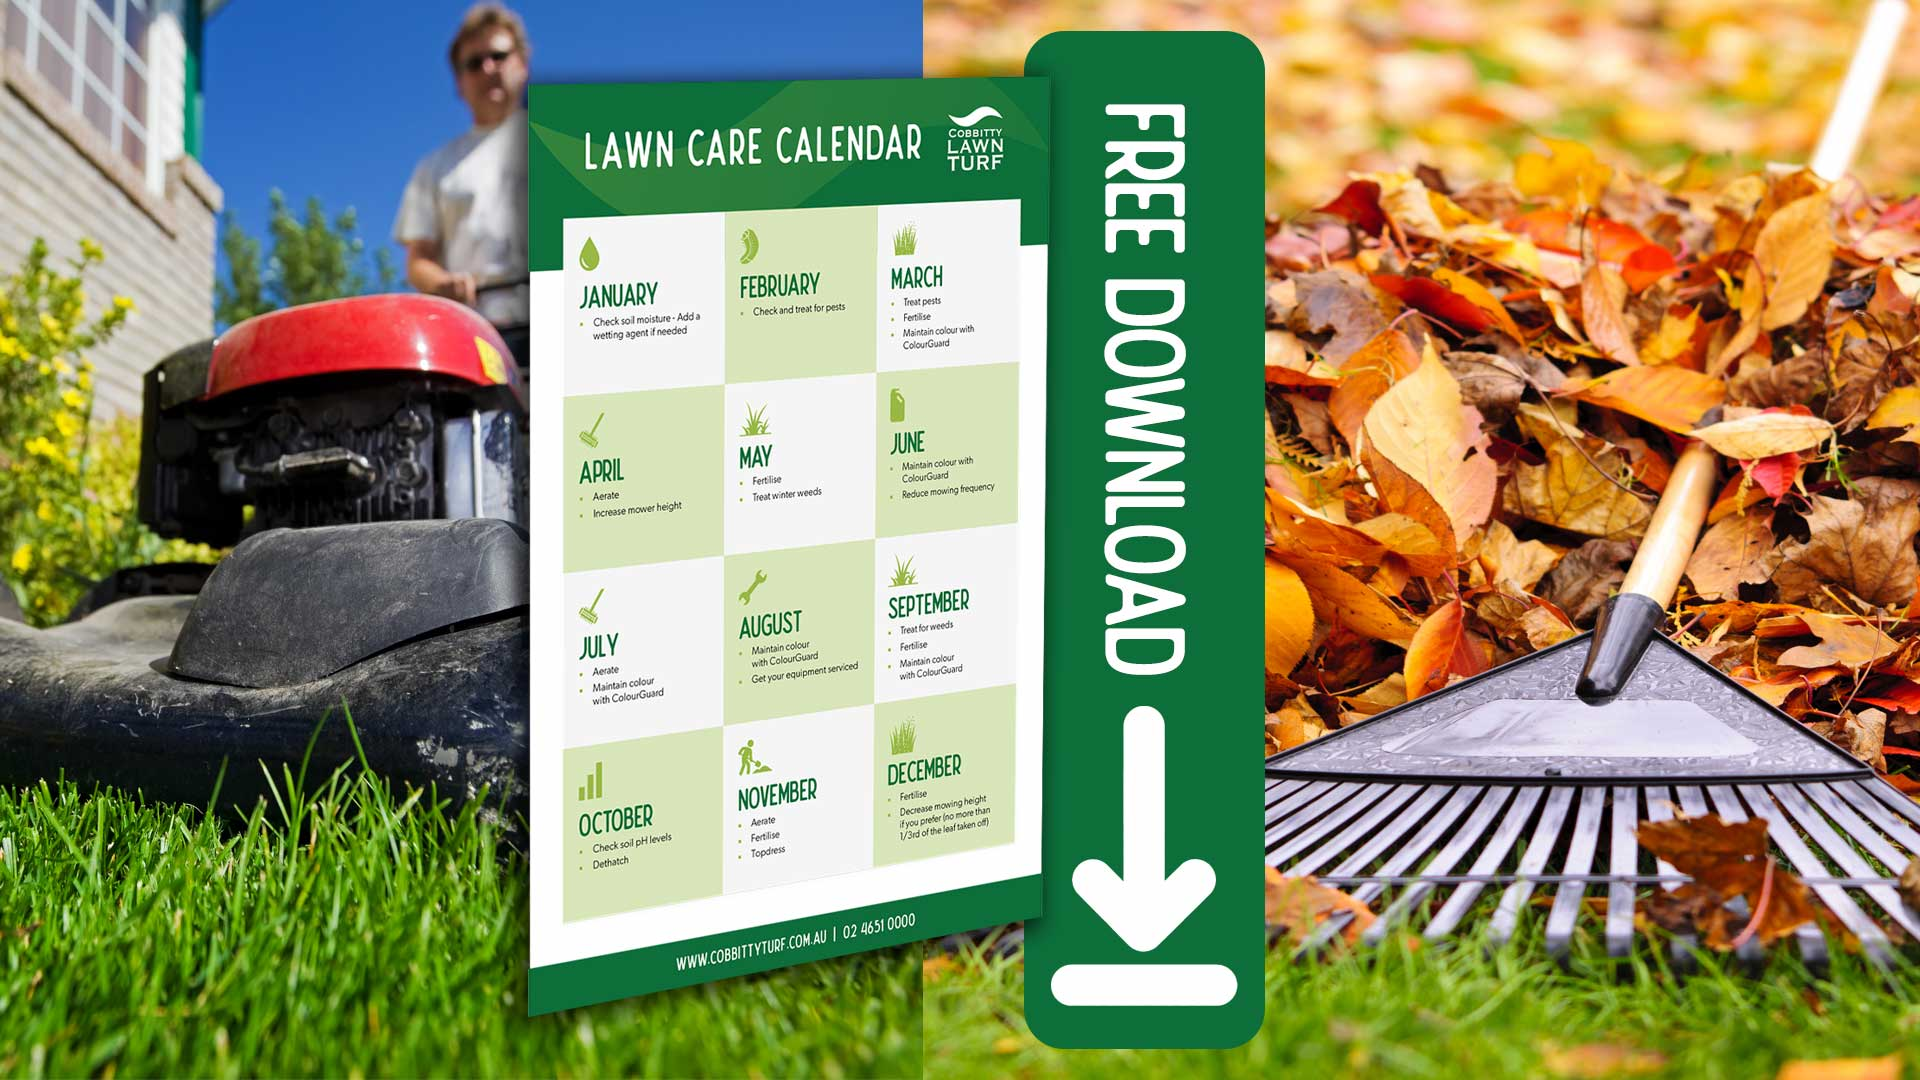 Lawn Care Calendar Download